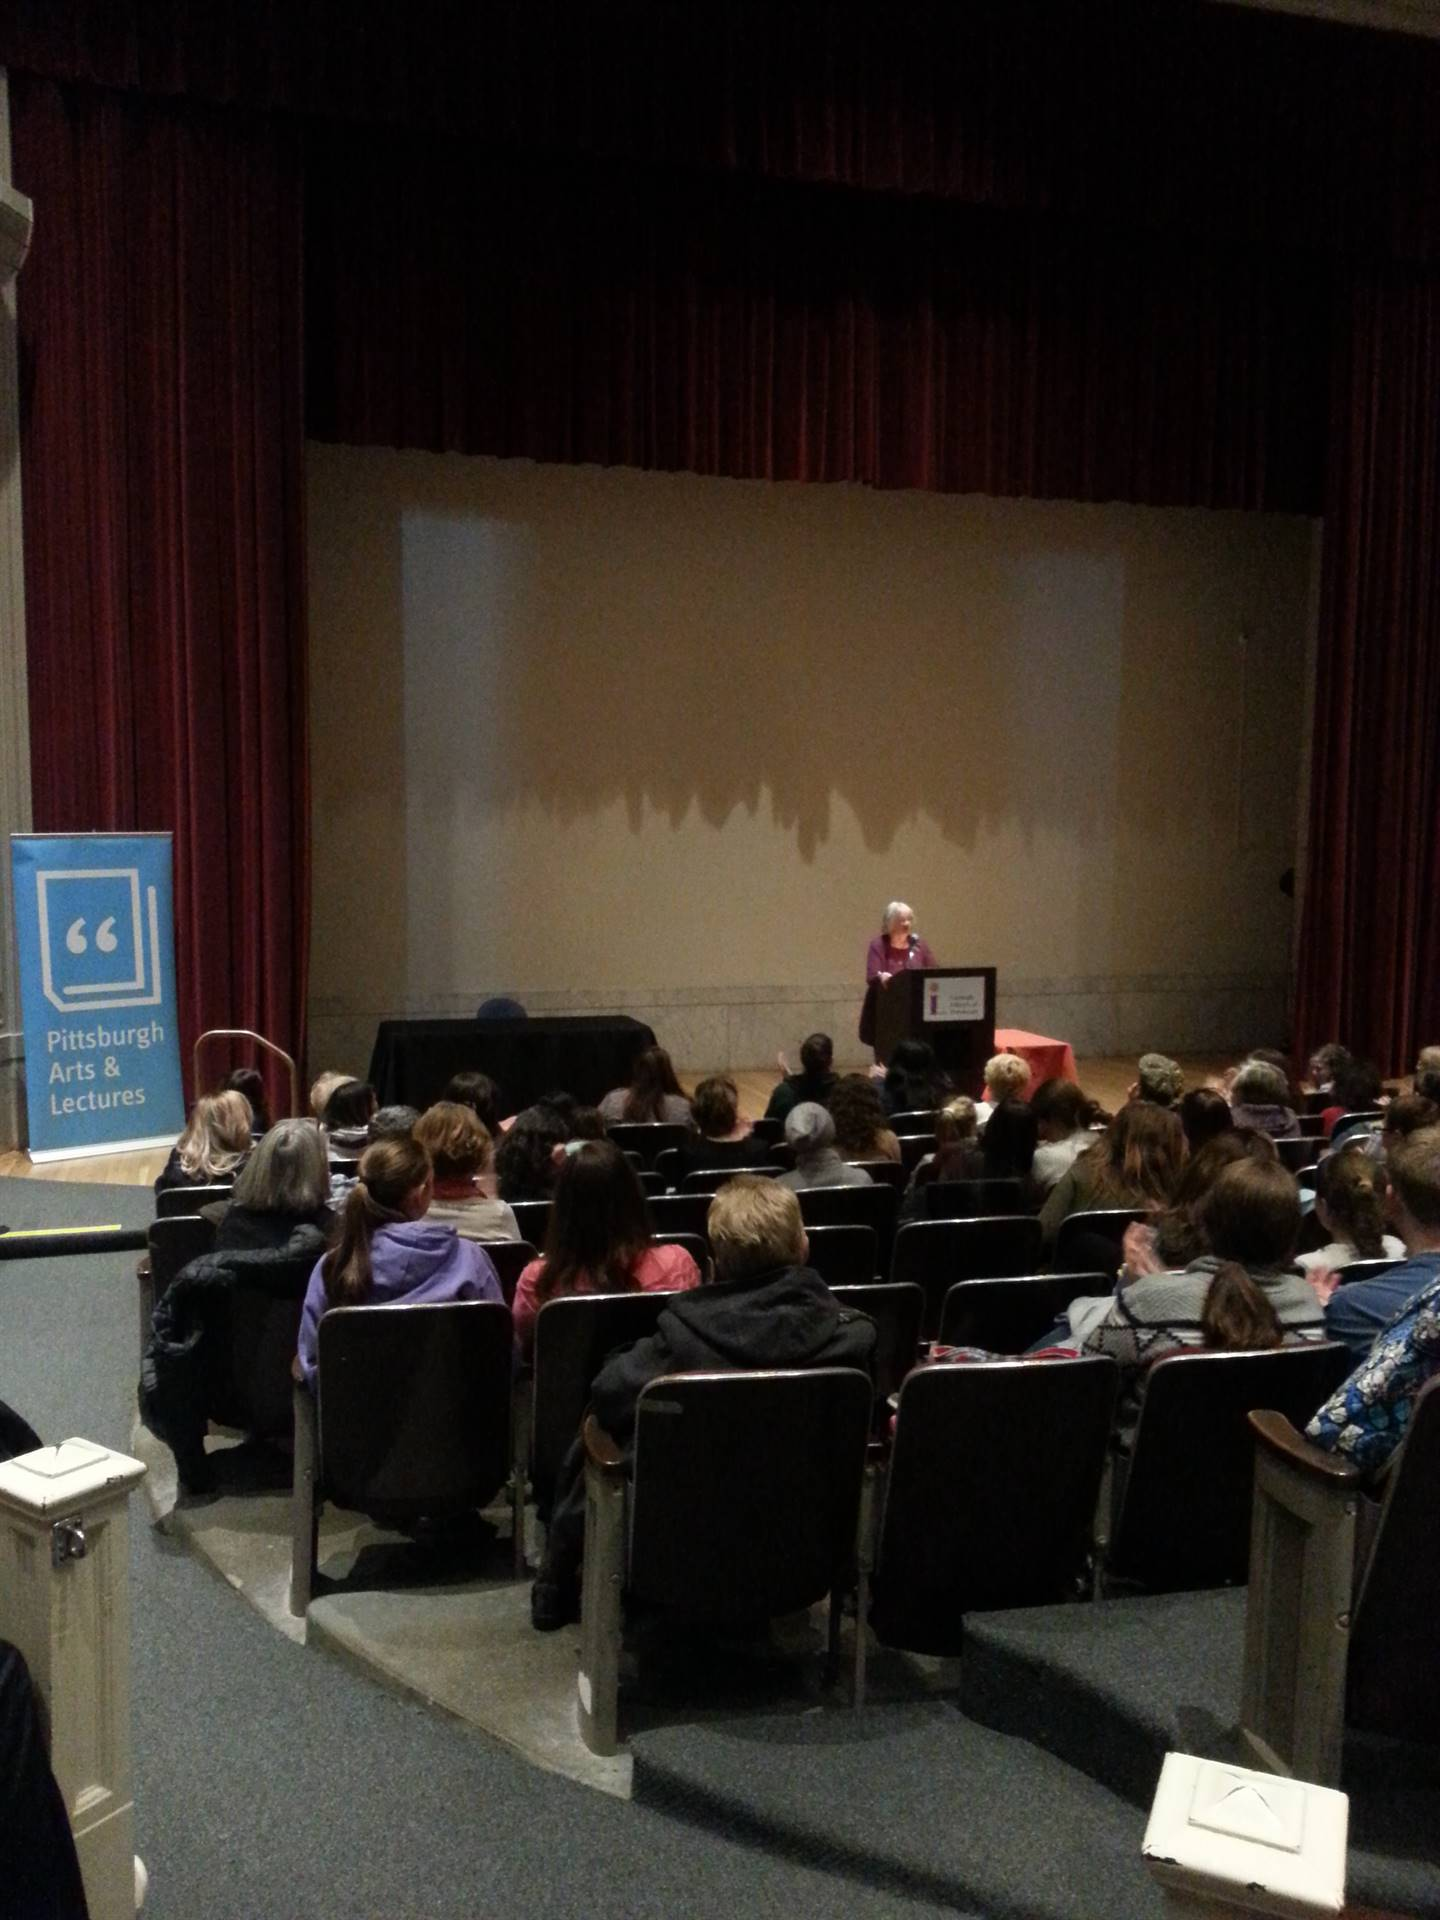 Katherine Paterson speaks to the audience.